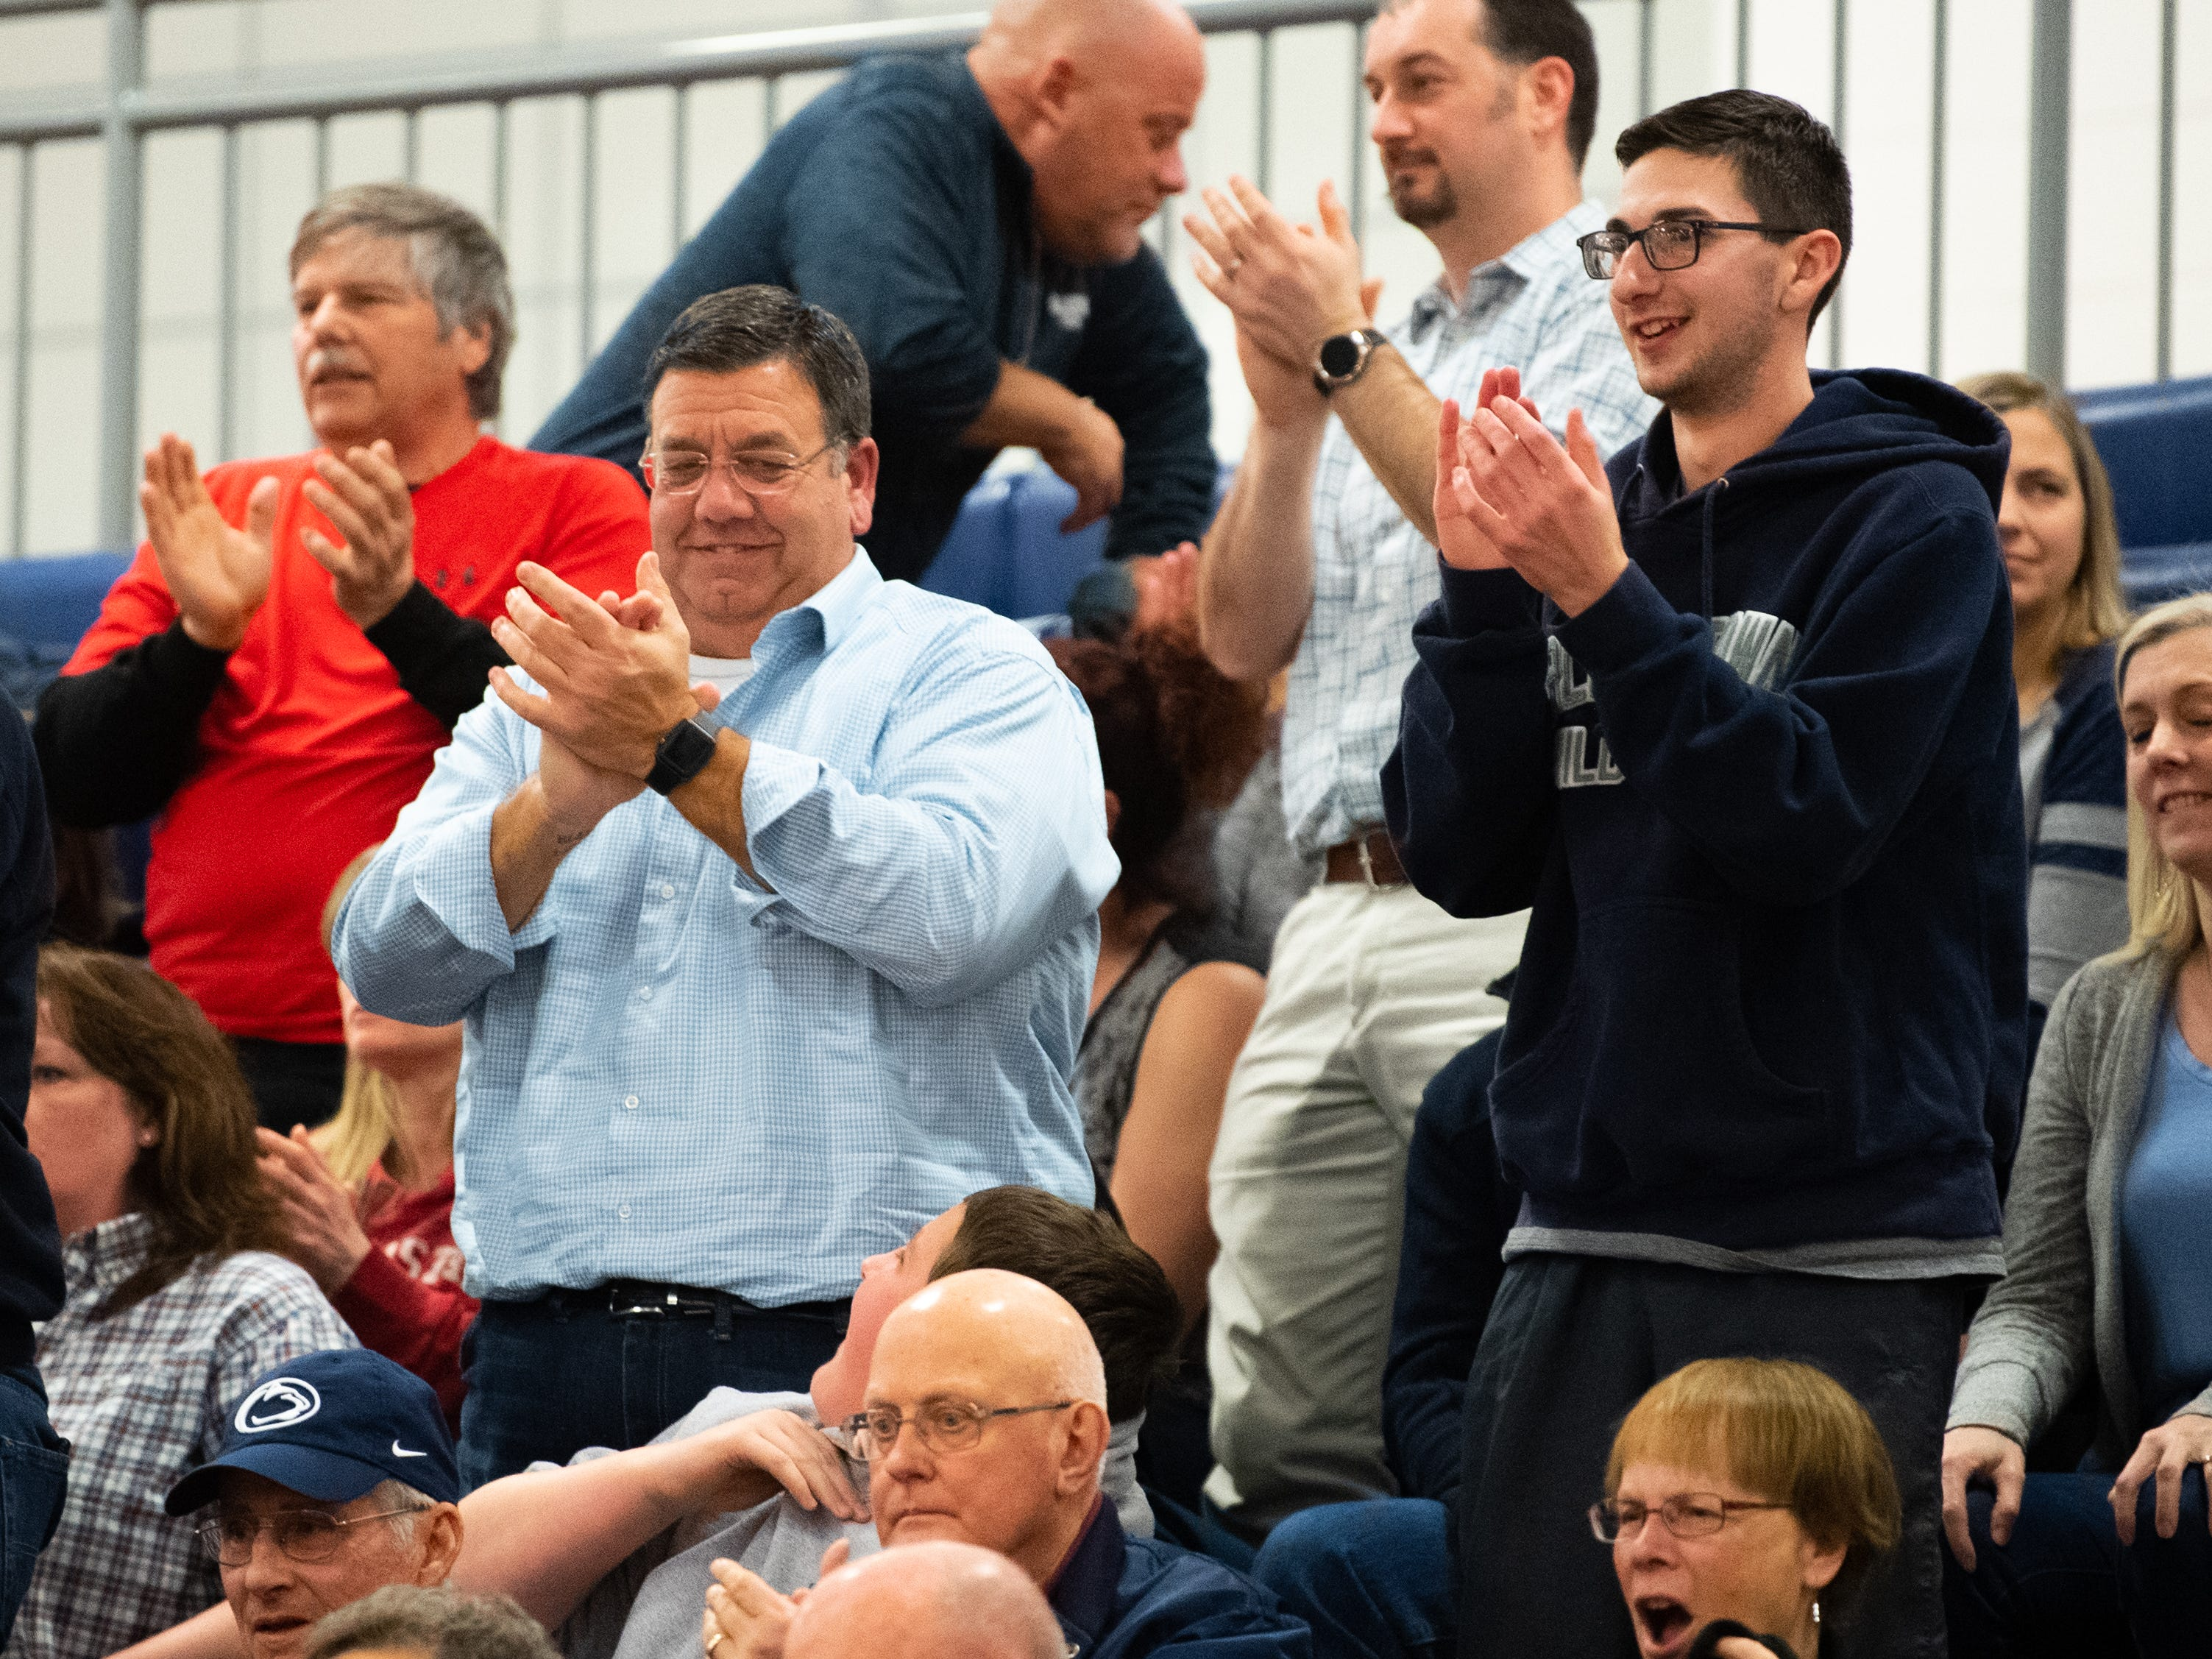 Dallastown fans give their team a standing ovation after the game, March 8, 2019 at West York Area High School. The Wildcats defeated the Cougars 43 to 39.